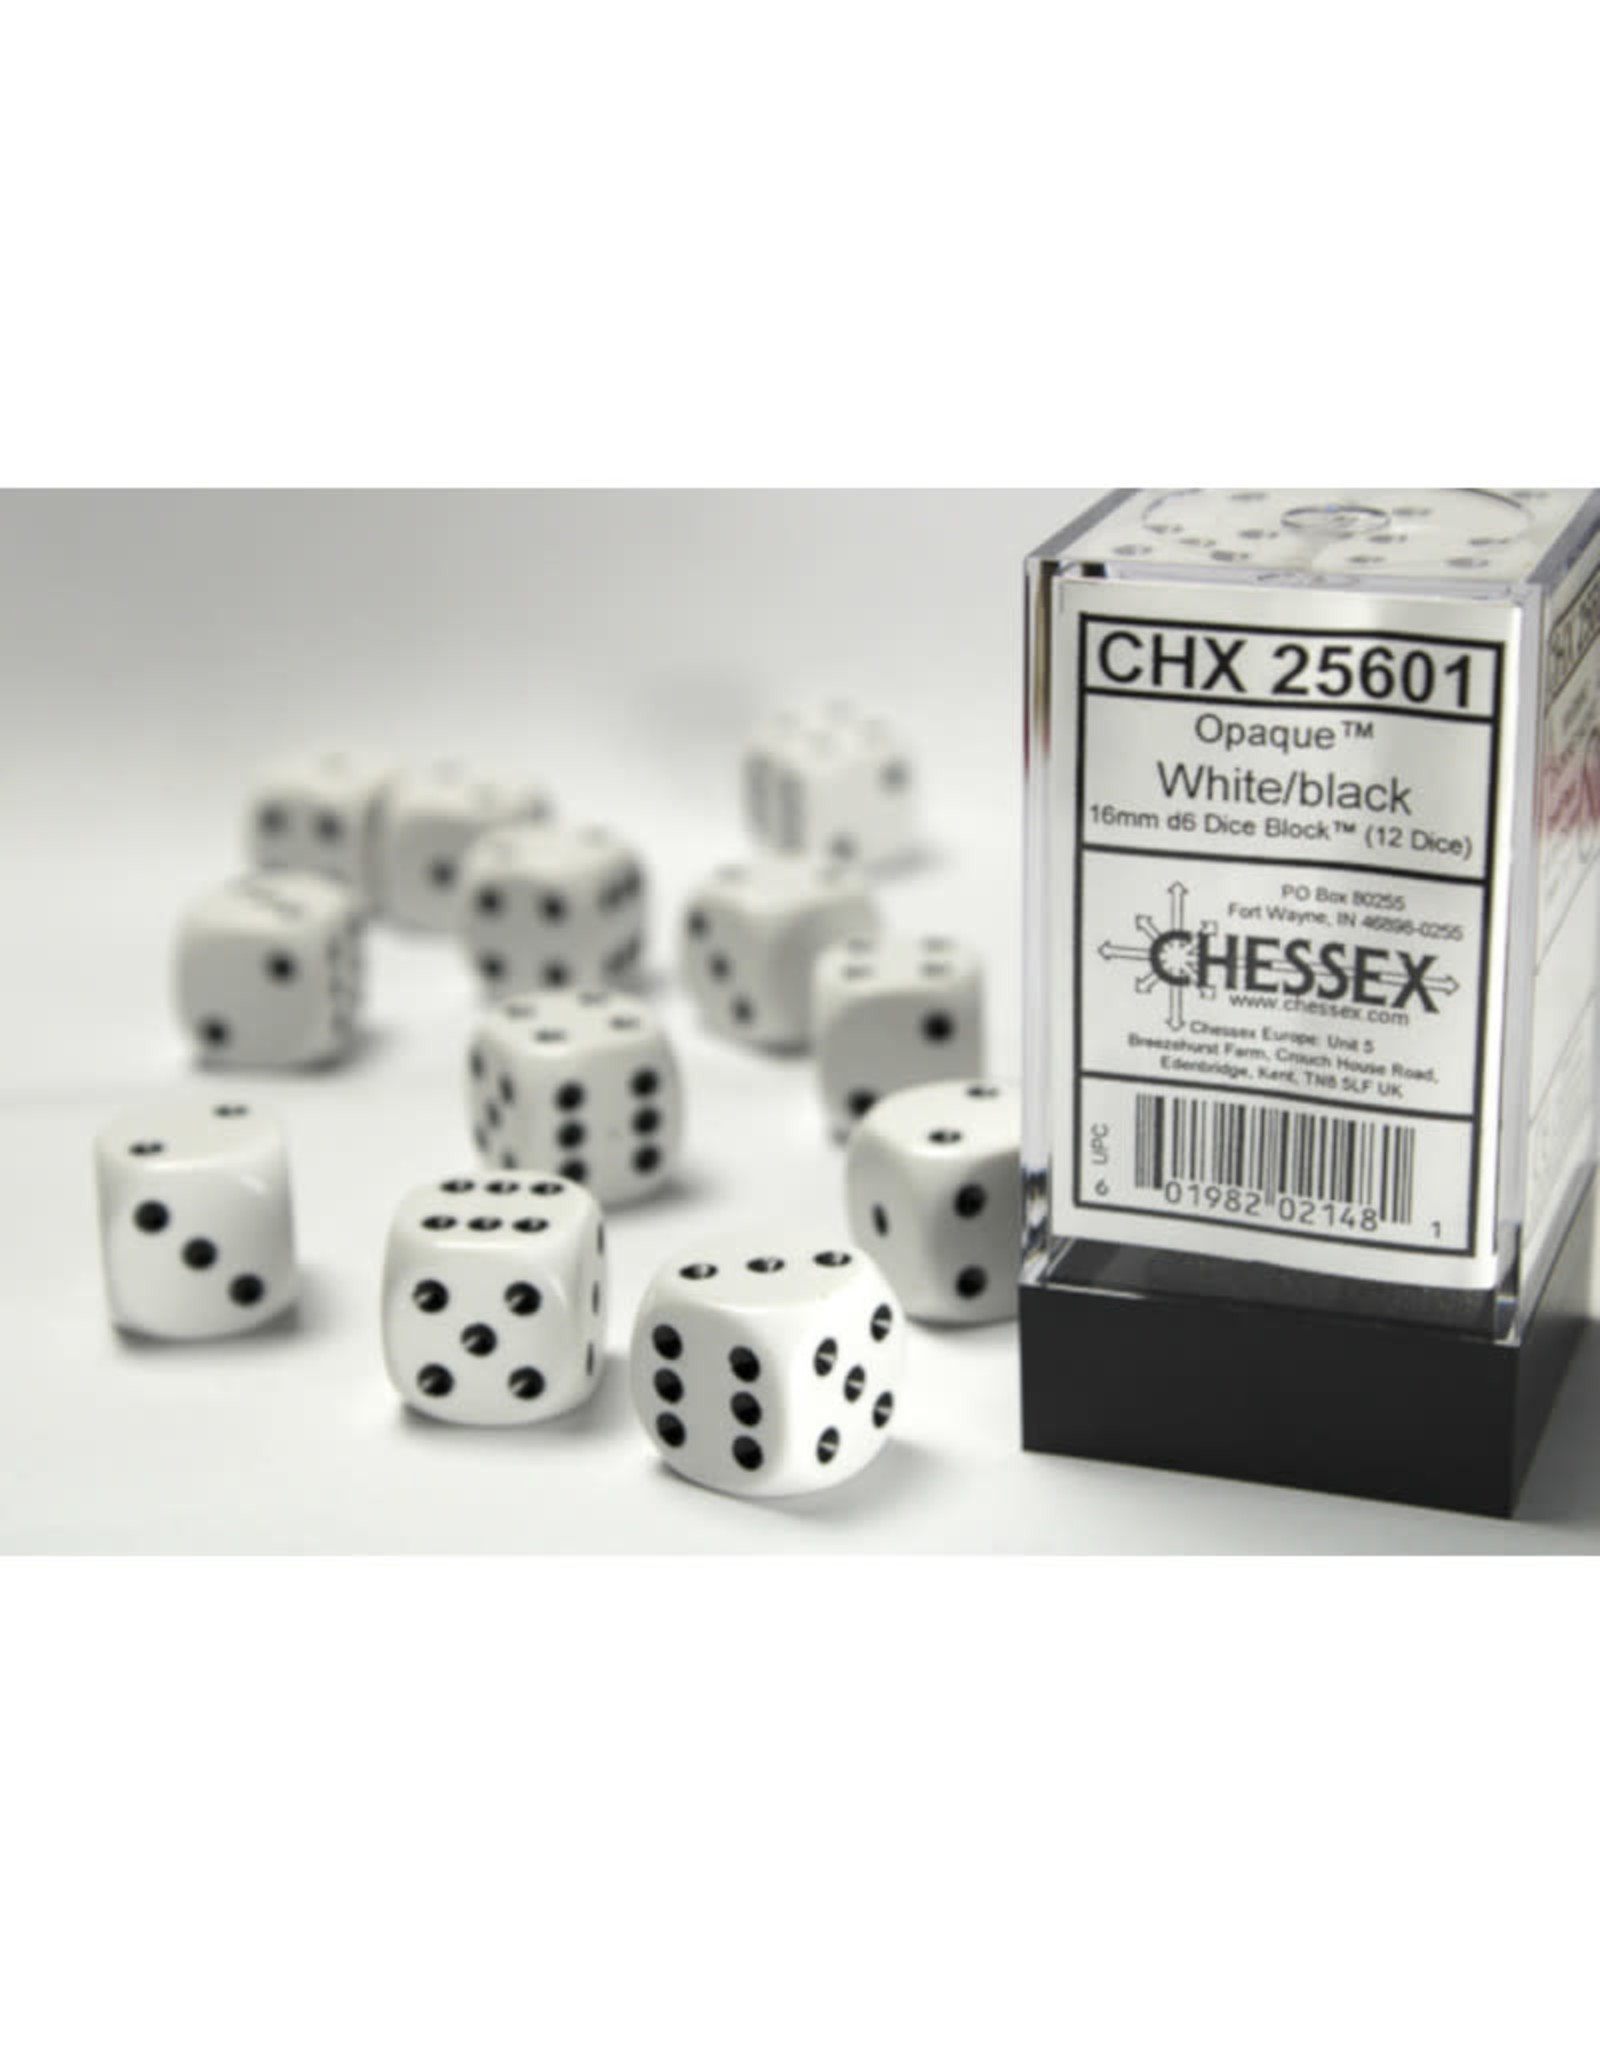 Chessex D6 Dice: 16mm Opaque White/Black (12)